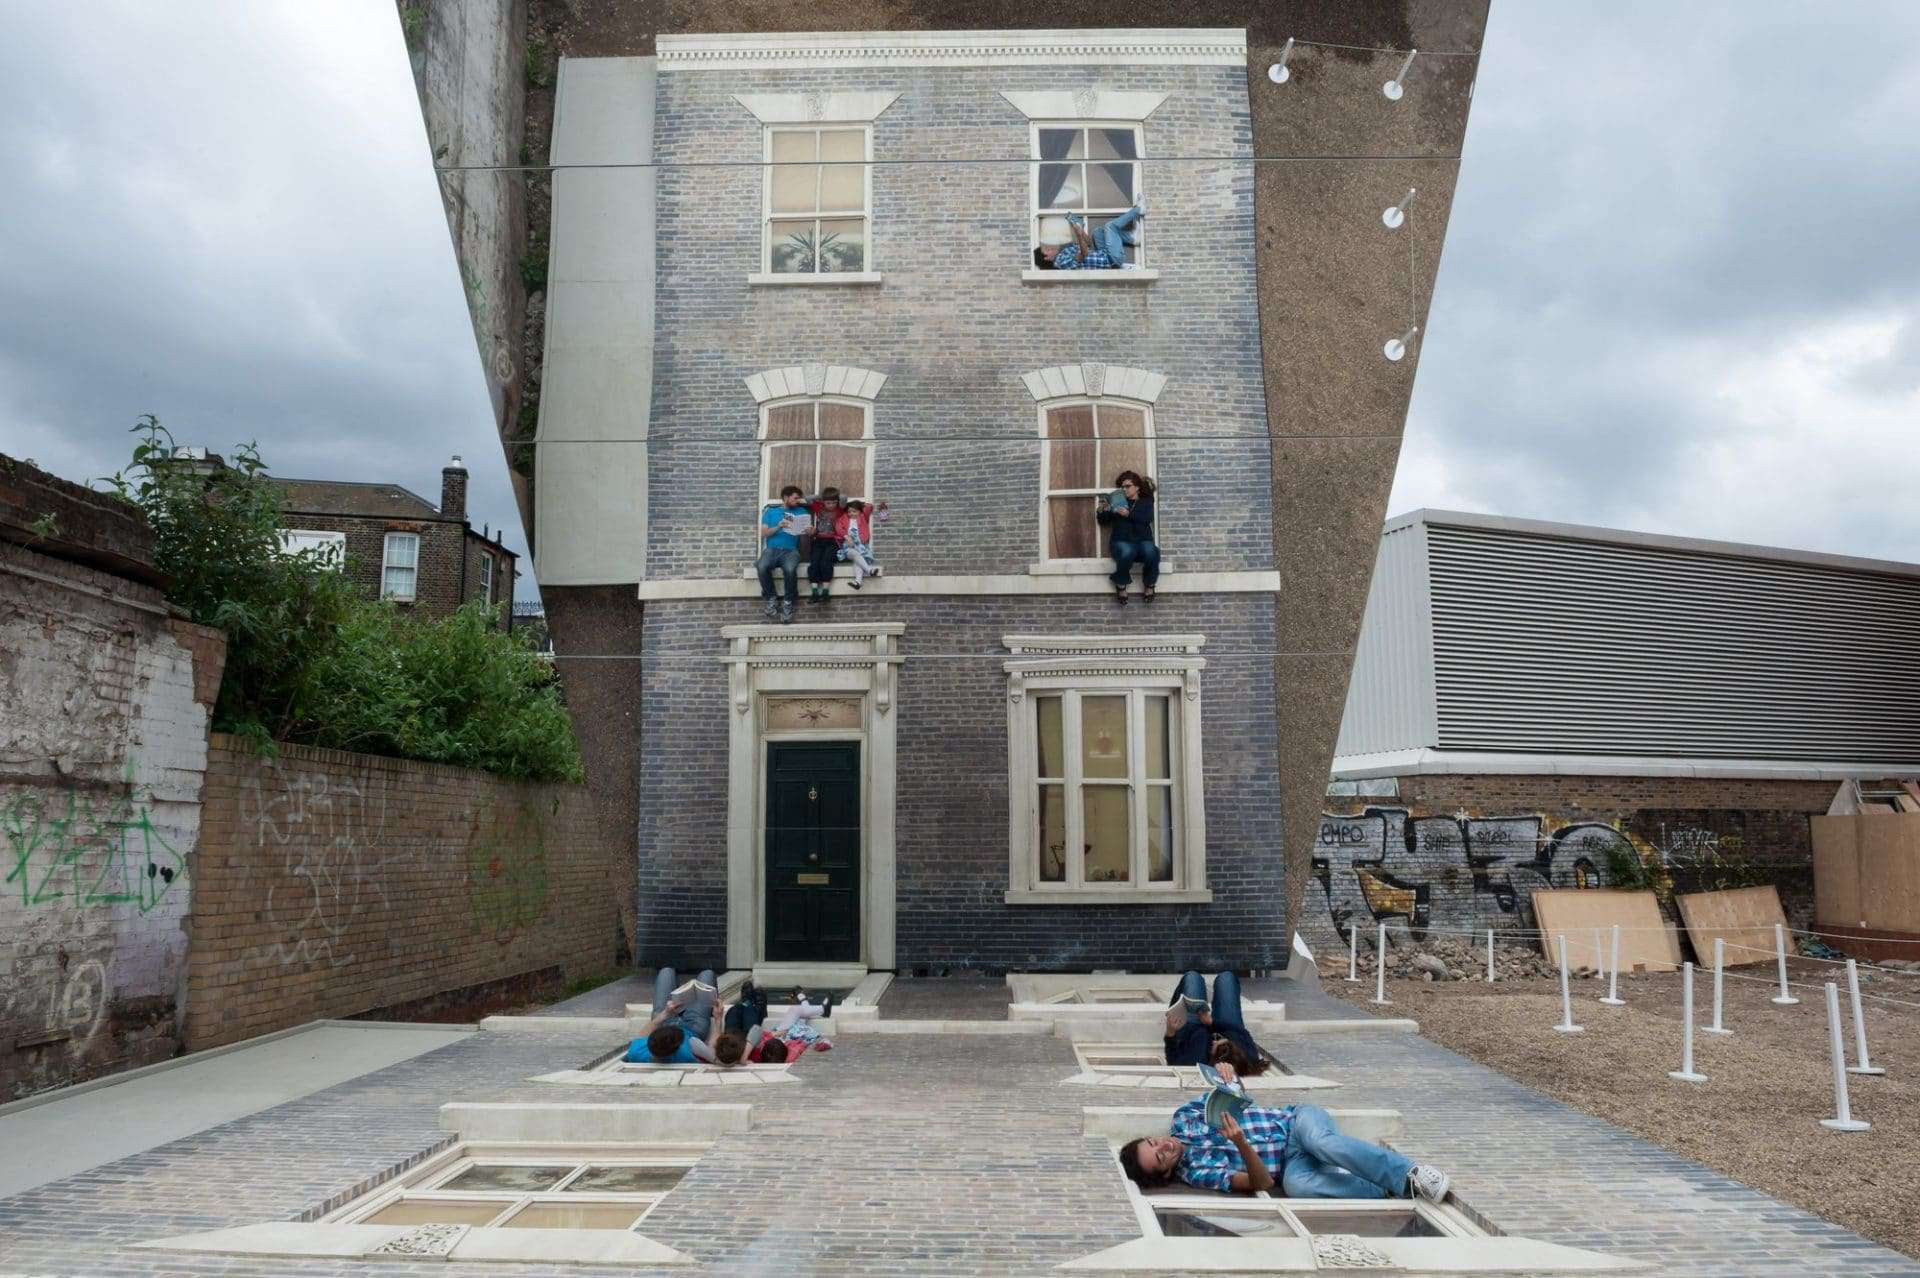 Dalston House di Leandro Erlich: a Londra come Spiderman